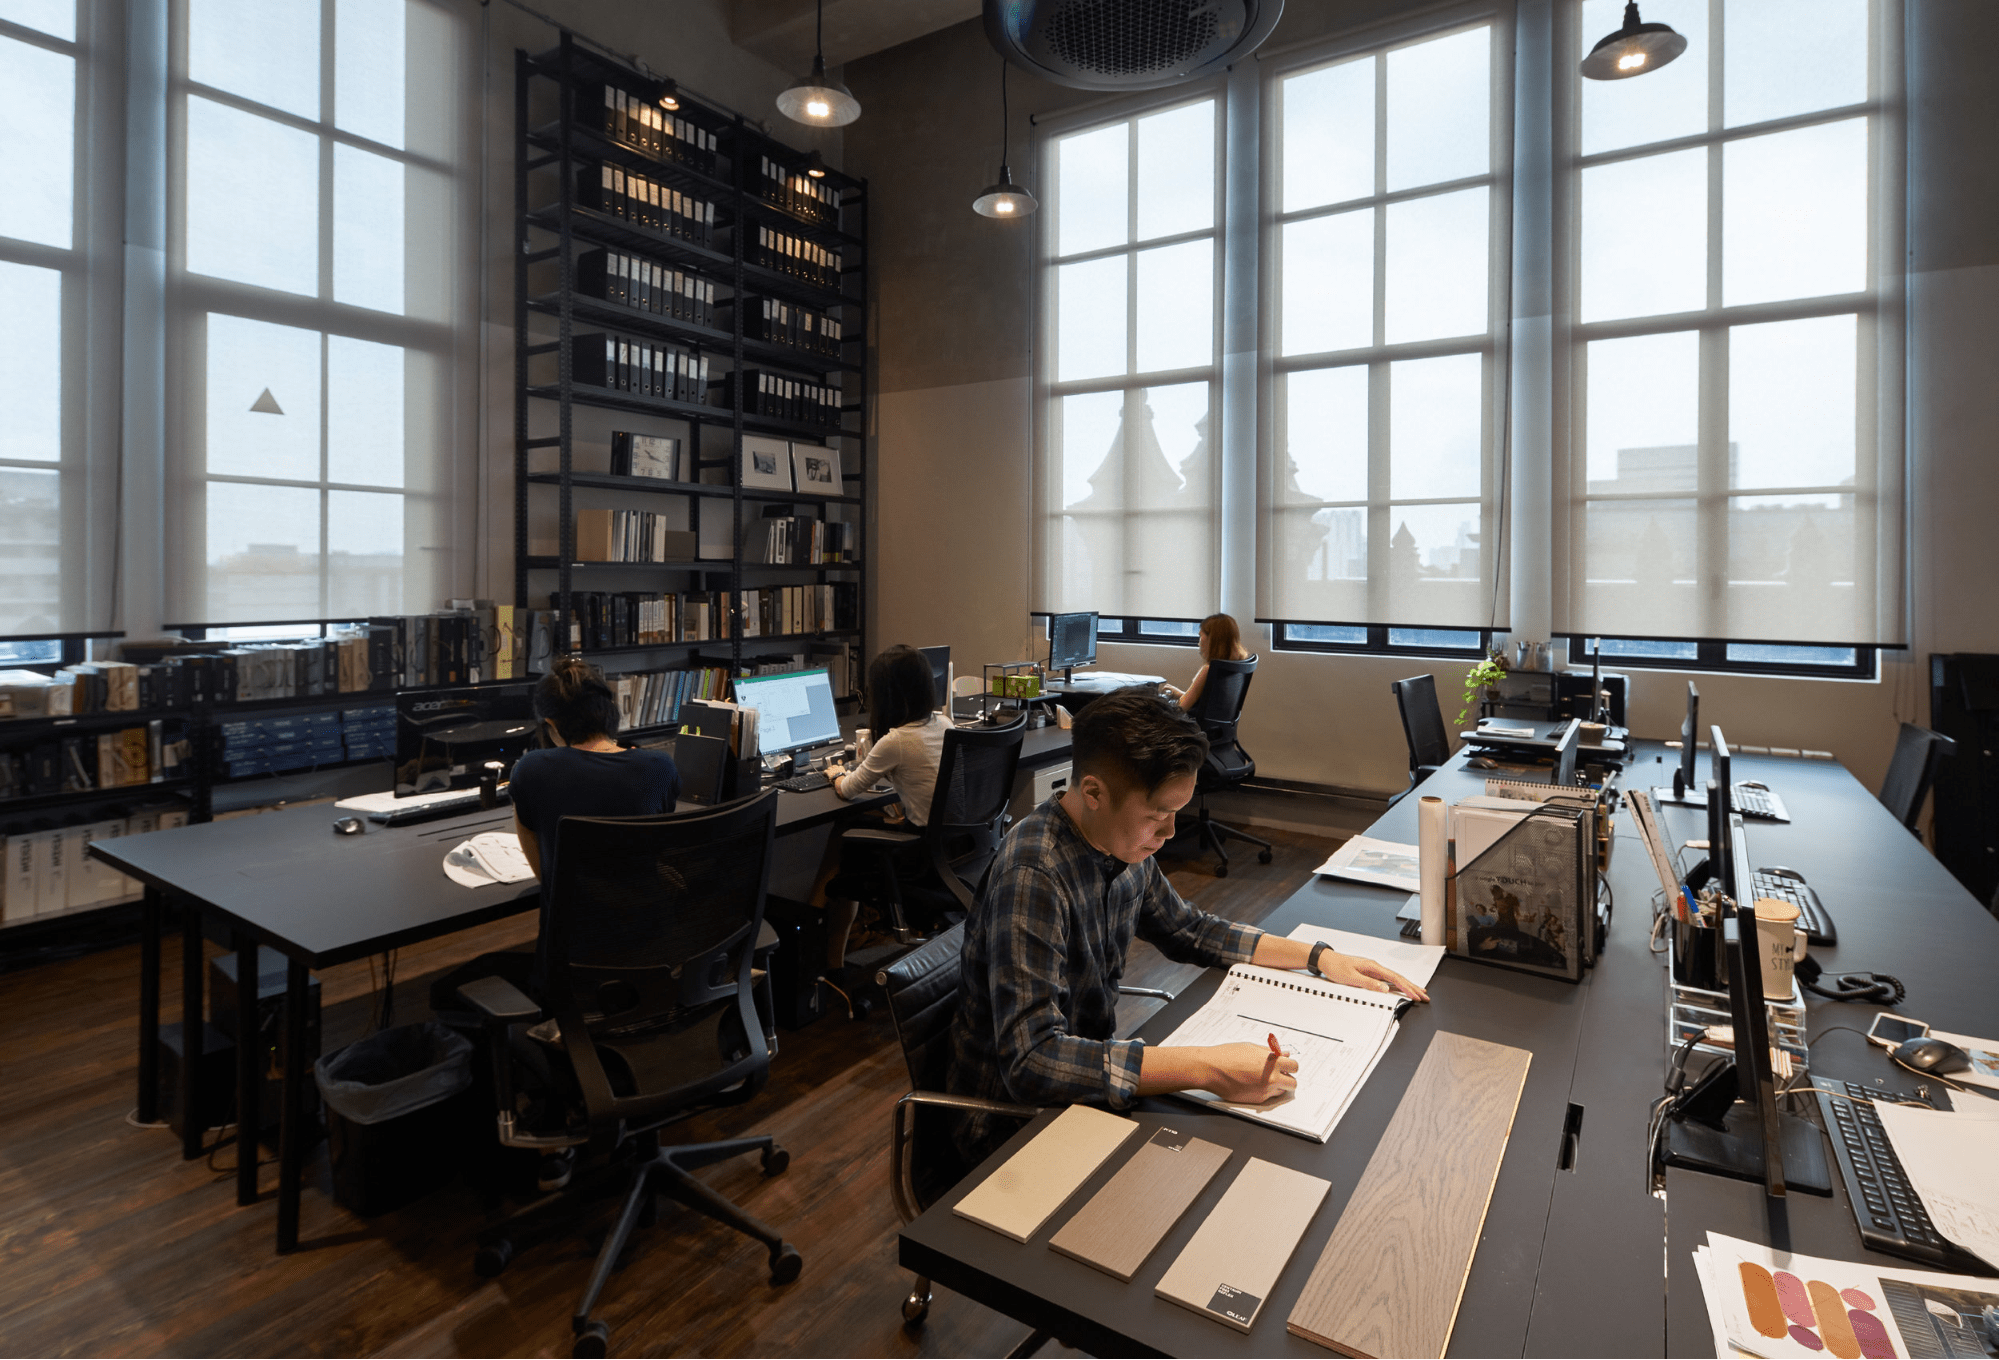 The Mill office space